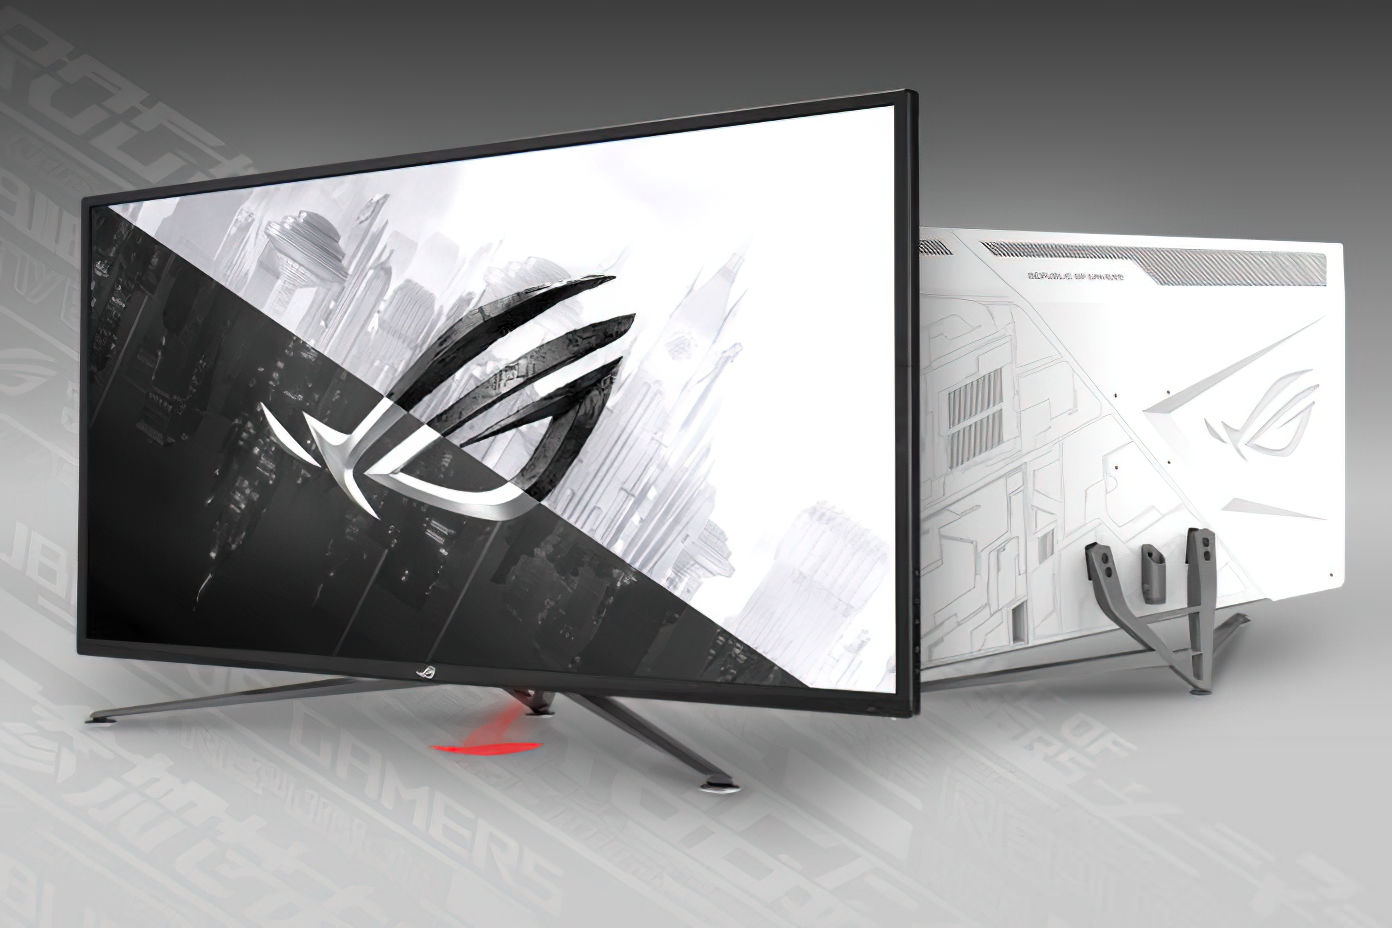 ASUS ROG STRIX XG43UQ 43-inch 144Hz monitor with HDMI 2.1 will be available in May – VideoCardz.com